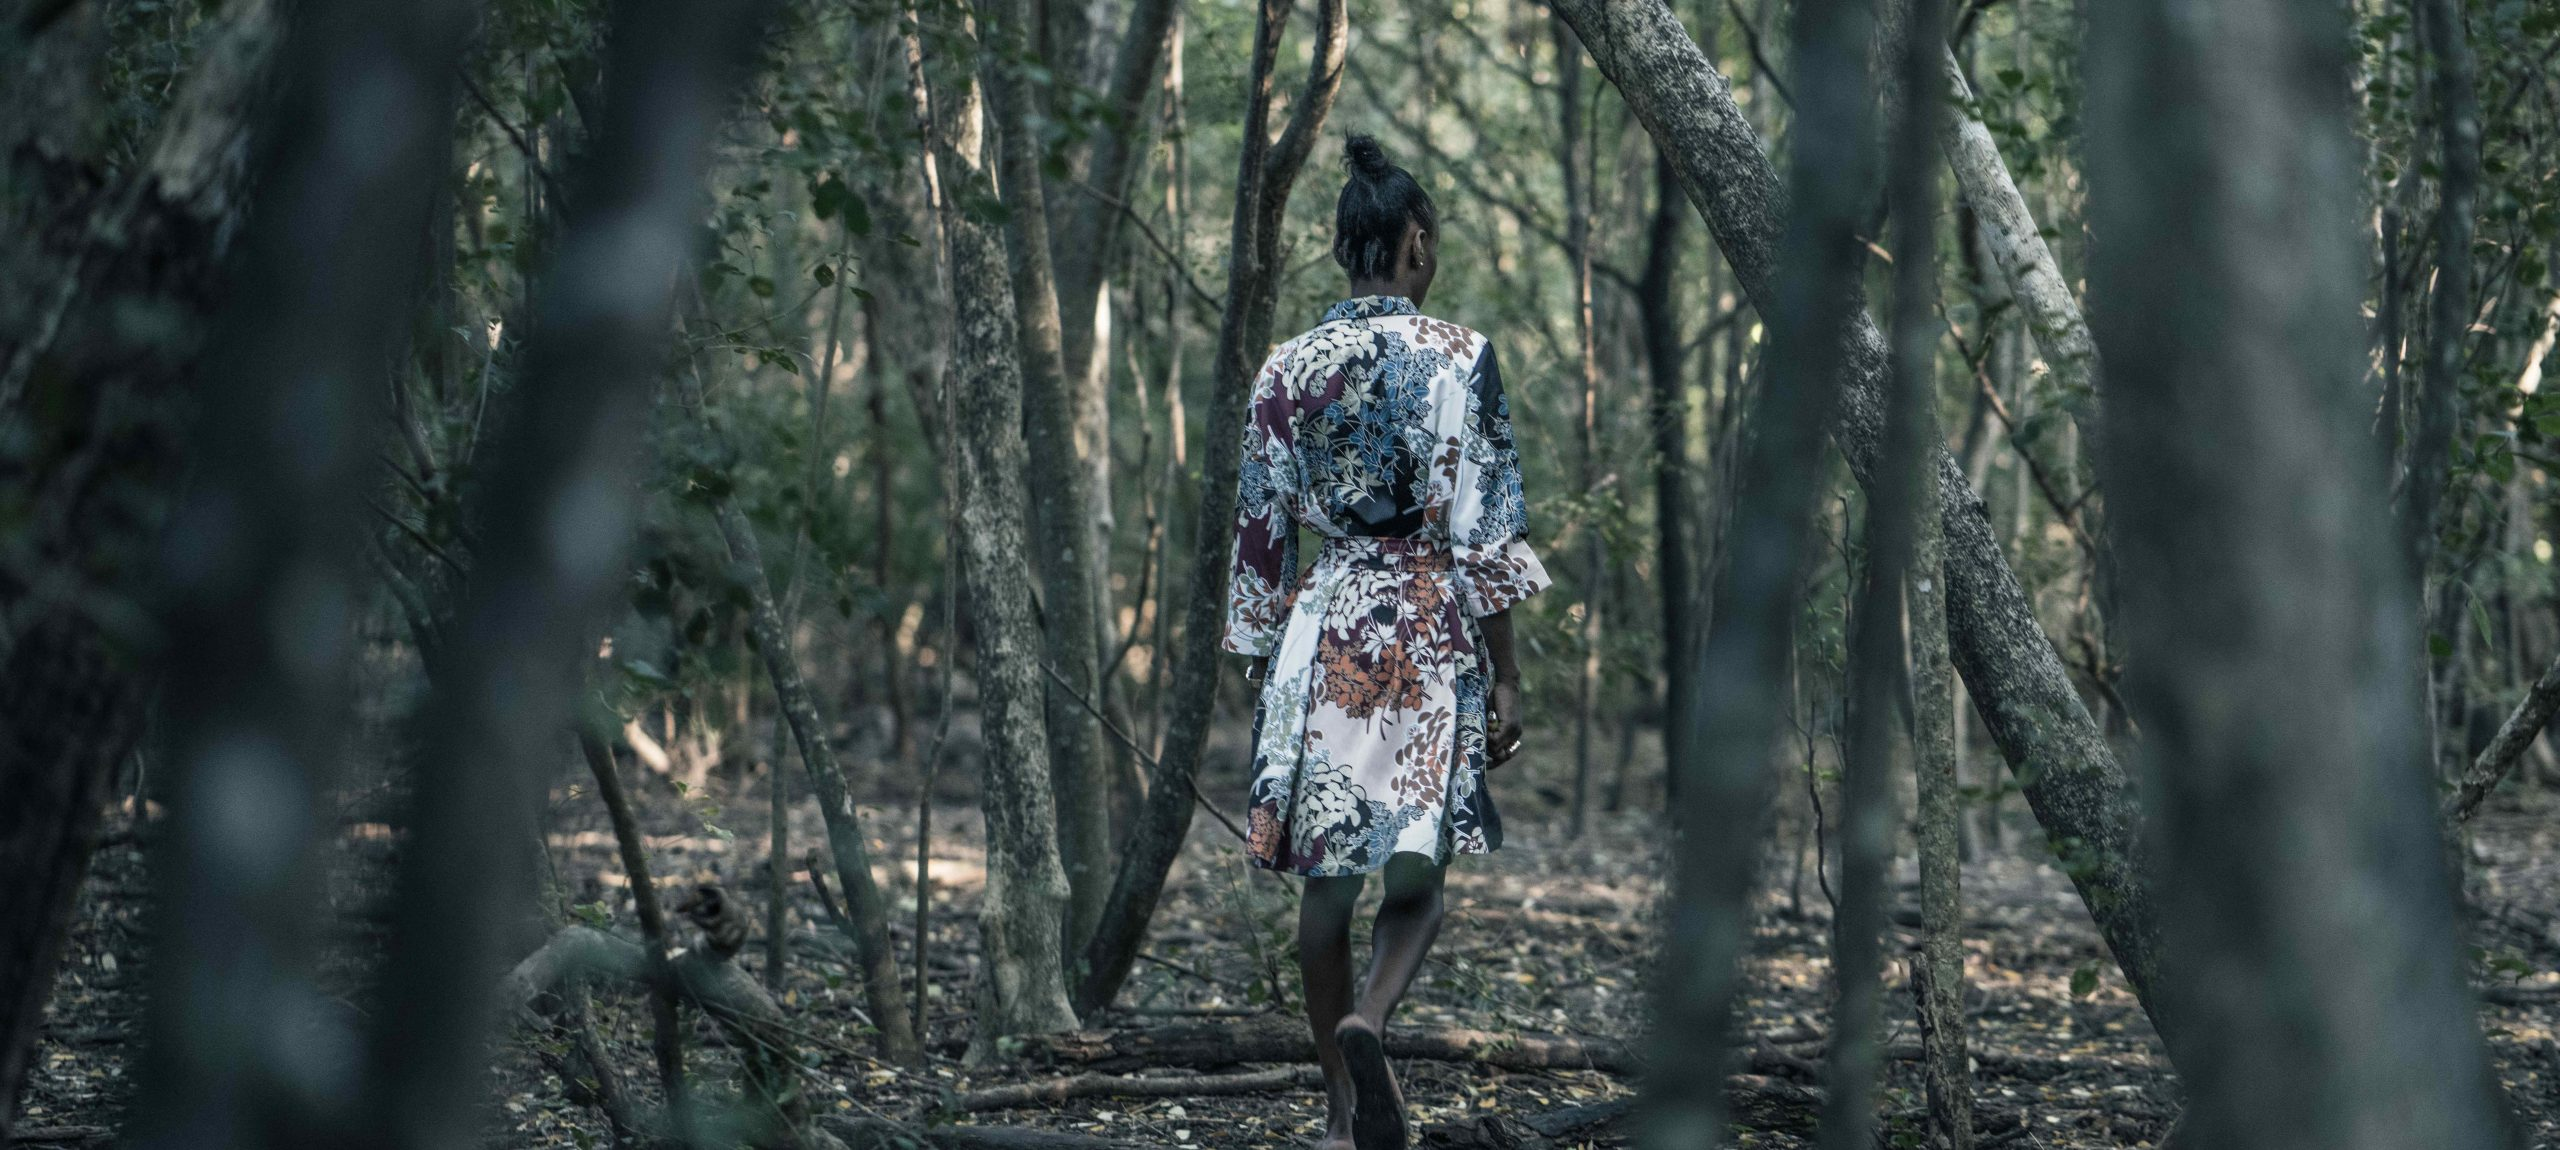 model mica wearing kimono in a forest